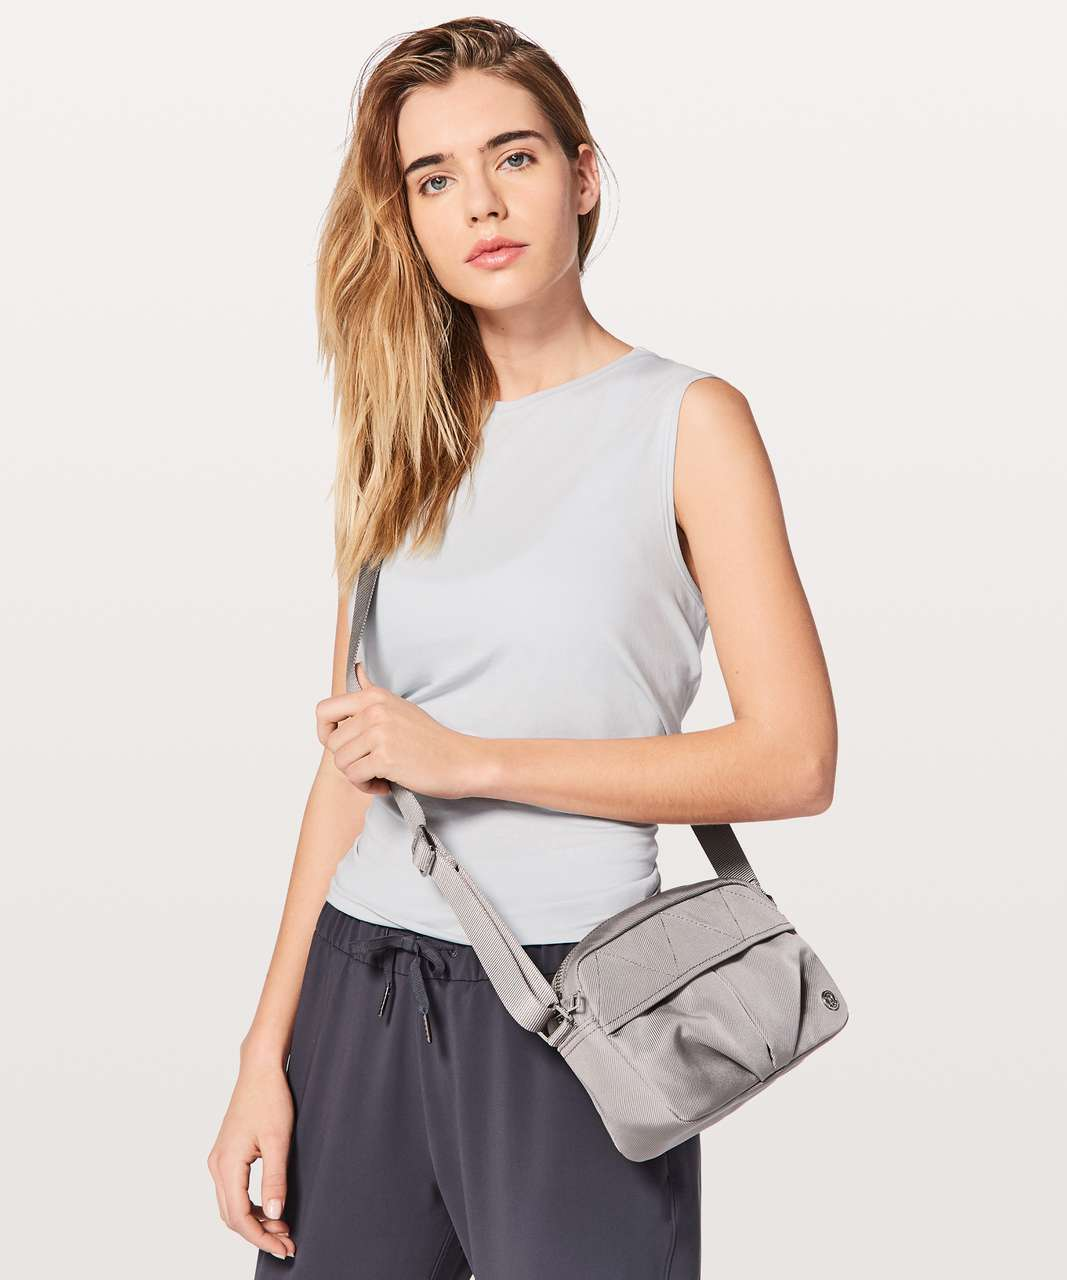 Lululemon City Adventurer Crossbody 3L - Dark Chrome